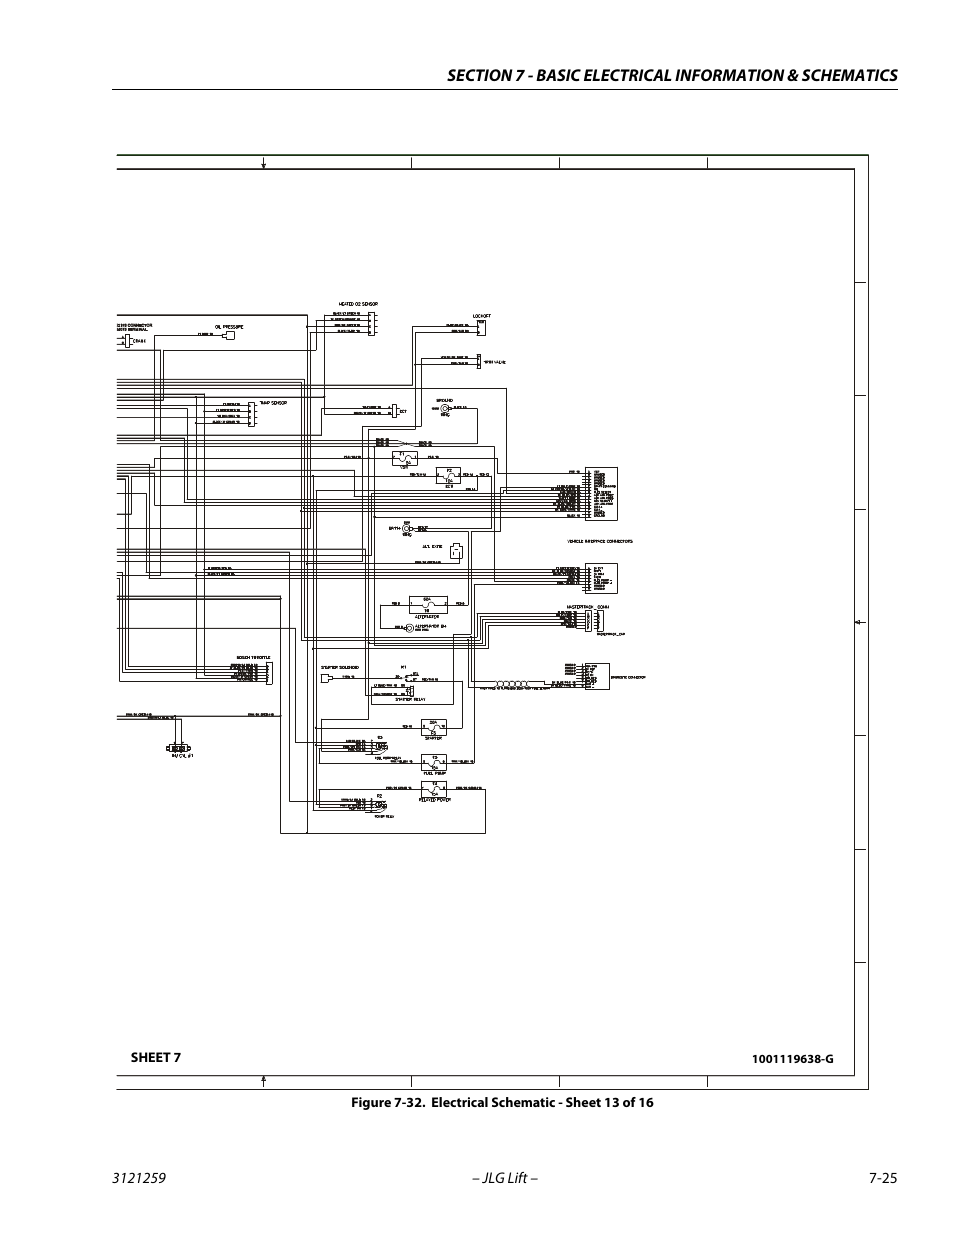 Electrical schematic - sheet 13 of 16 -25, Gm engine harness, Sheet 7 | JLG  340AJ Service Manual User Manual | Page 339 / 348